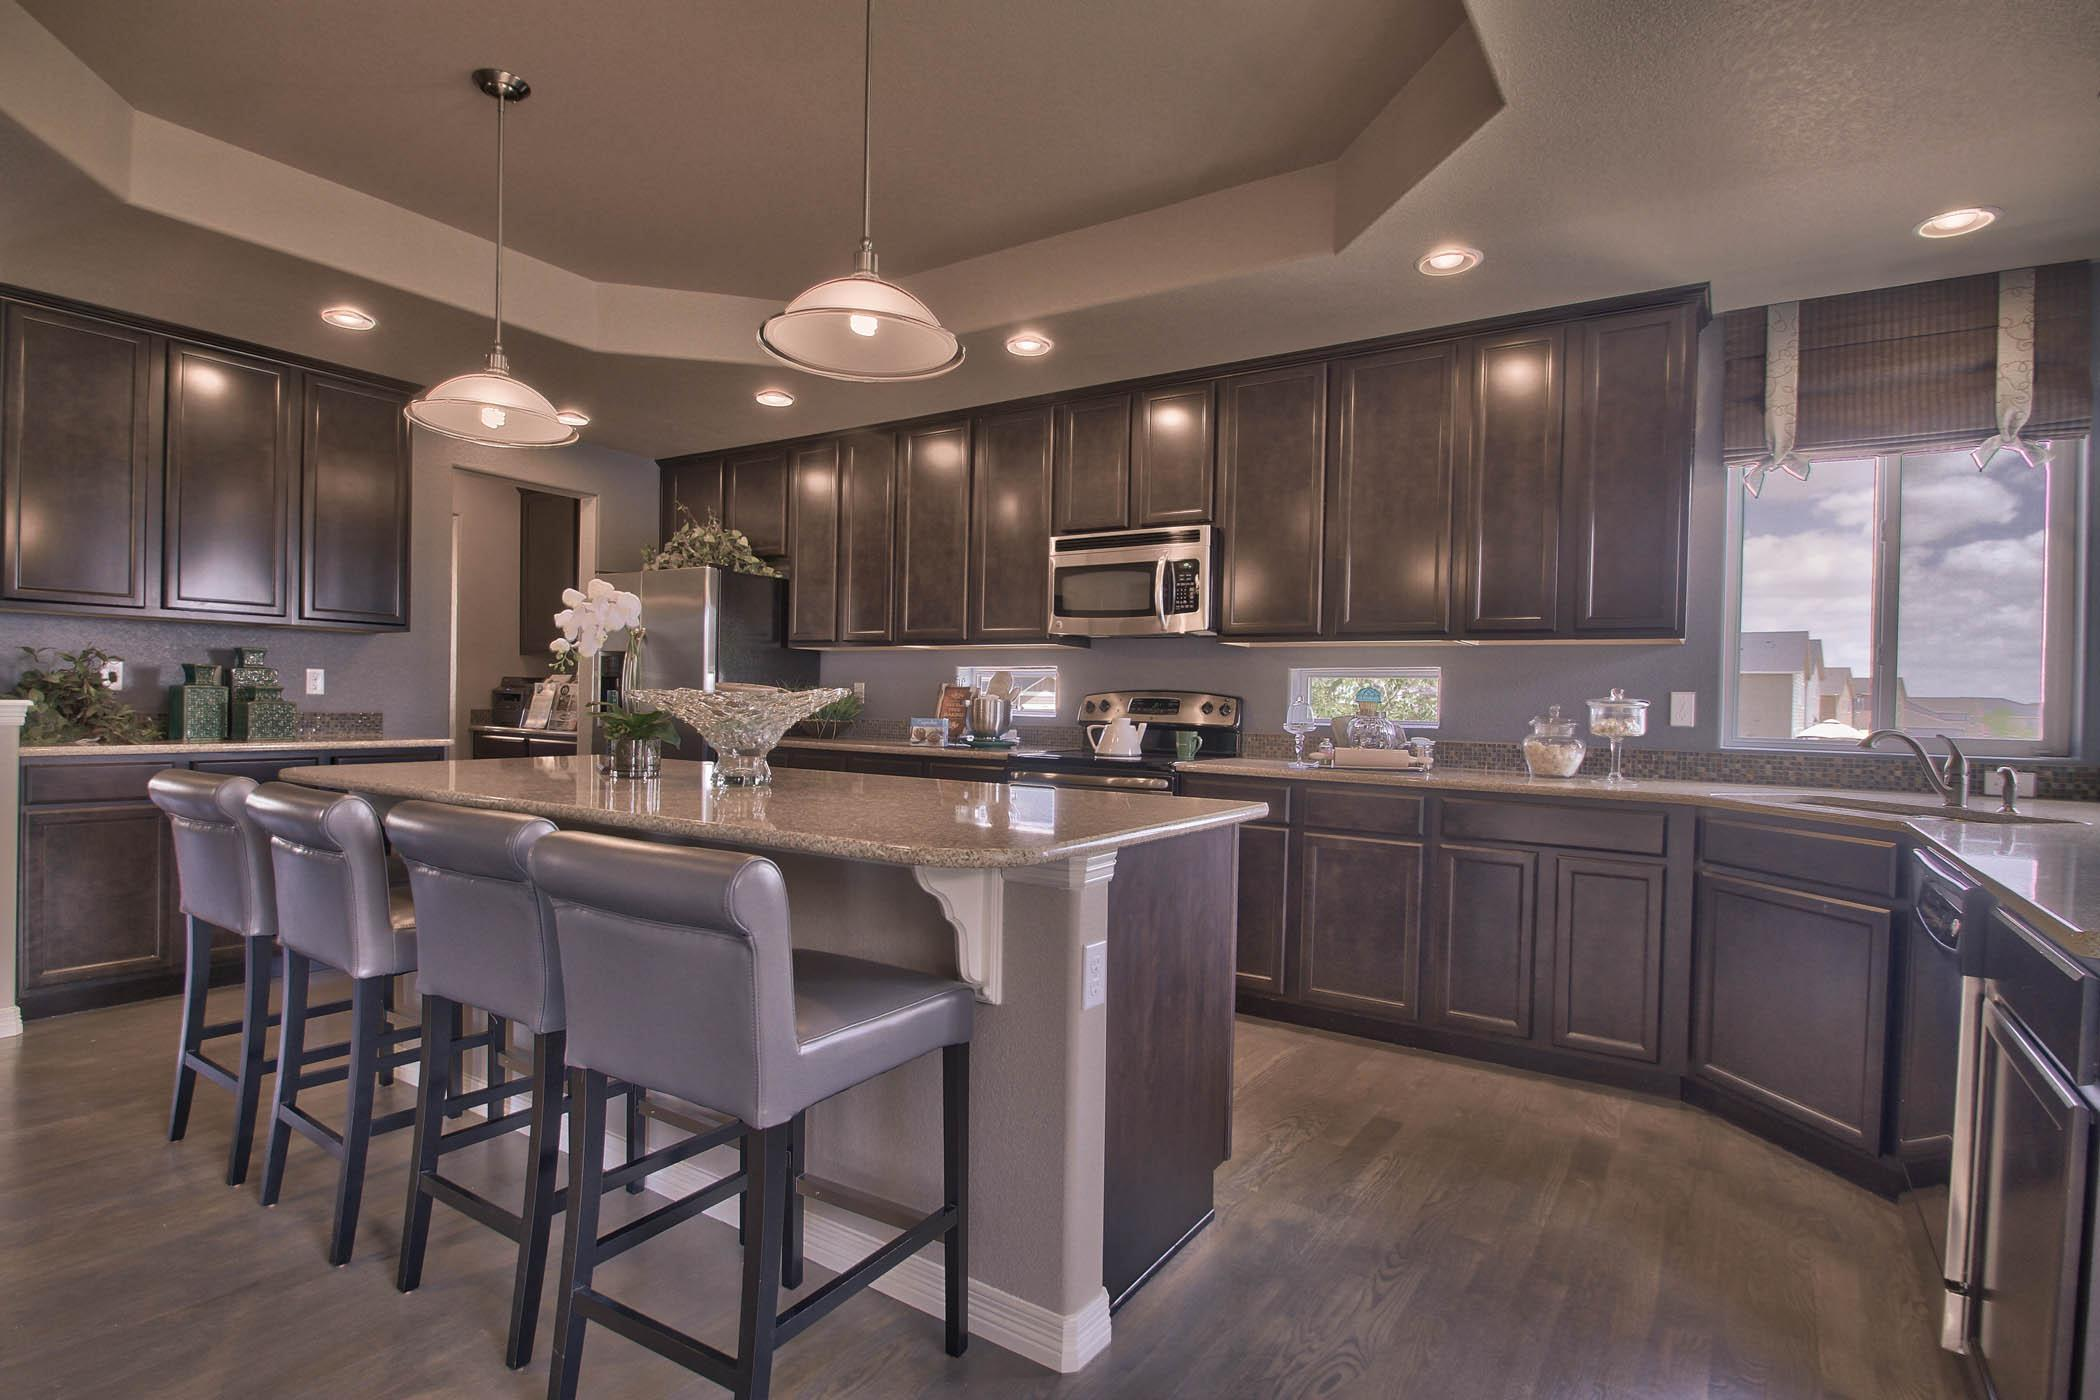 Kitchen featured in The Pikes Peak - Upper Level Master (Slab) By Reunion Homes